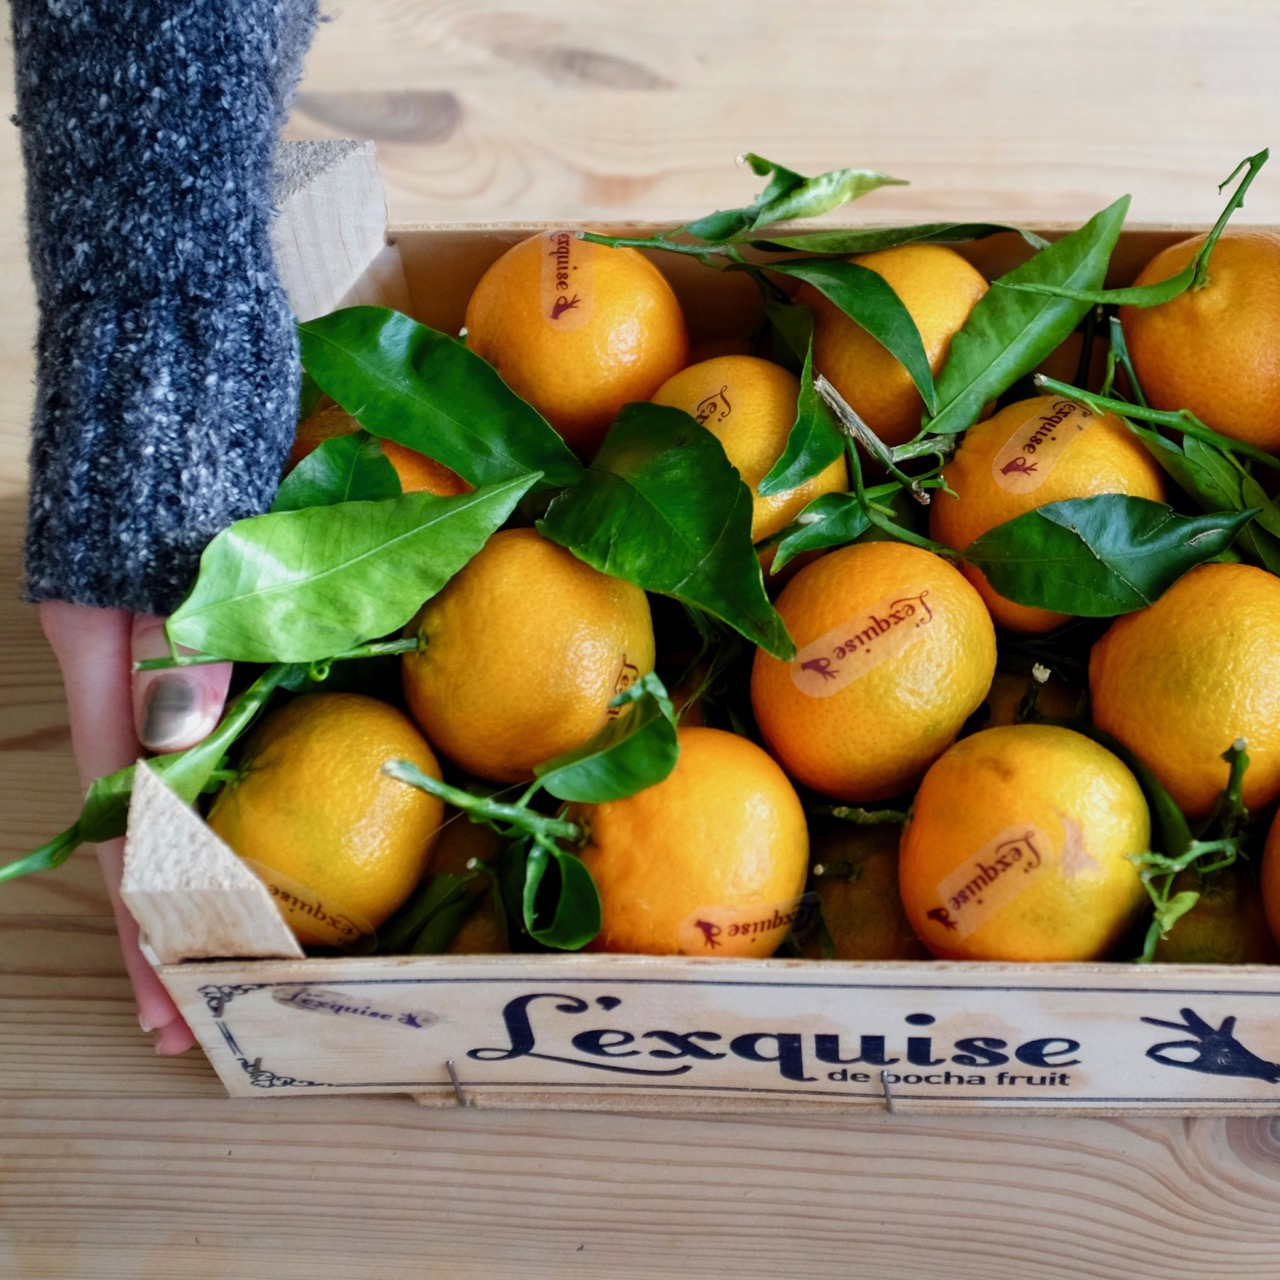 Wooden crate of clementines